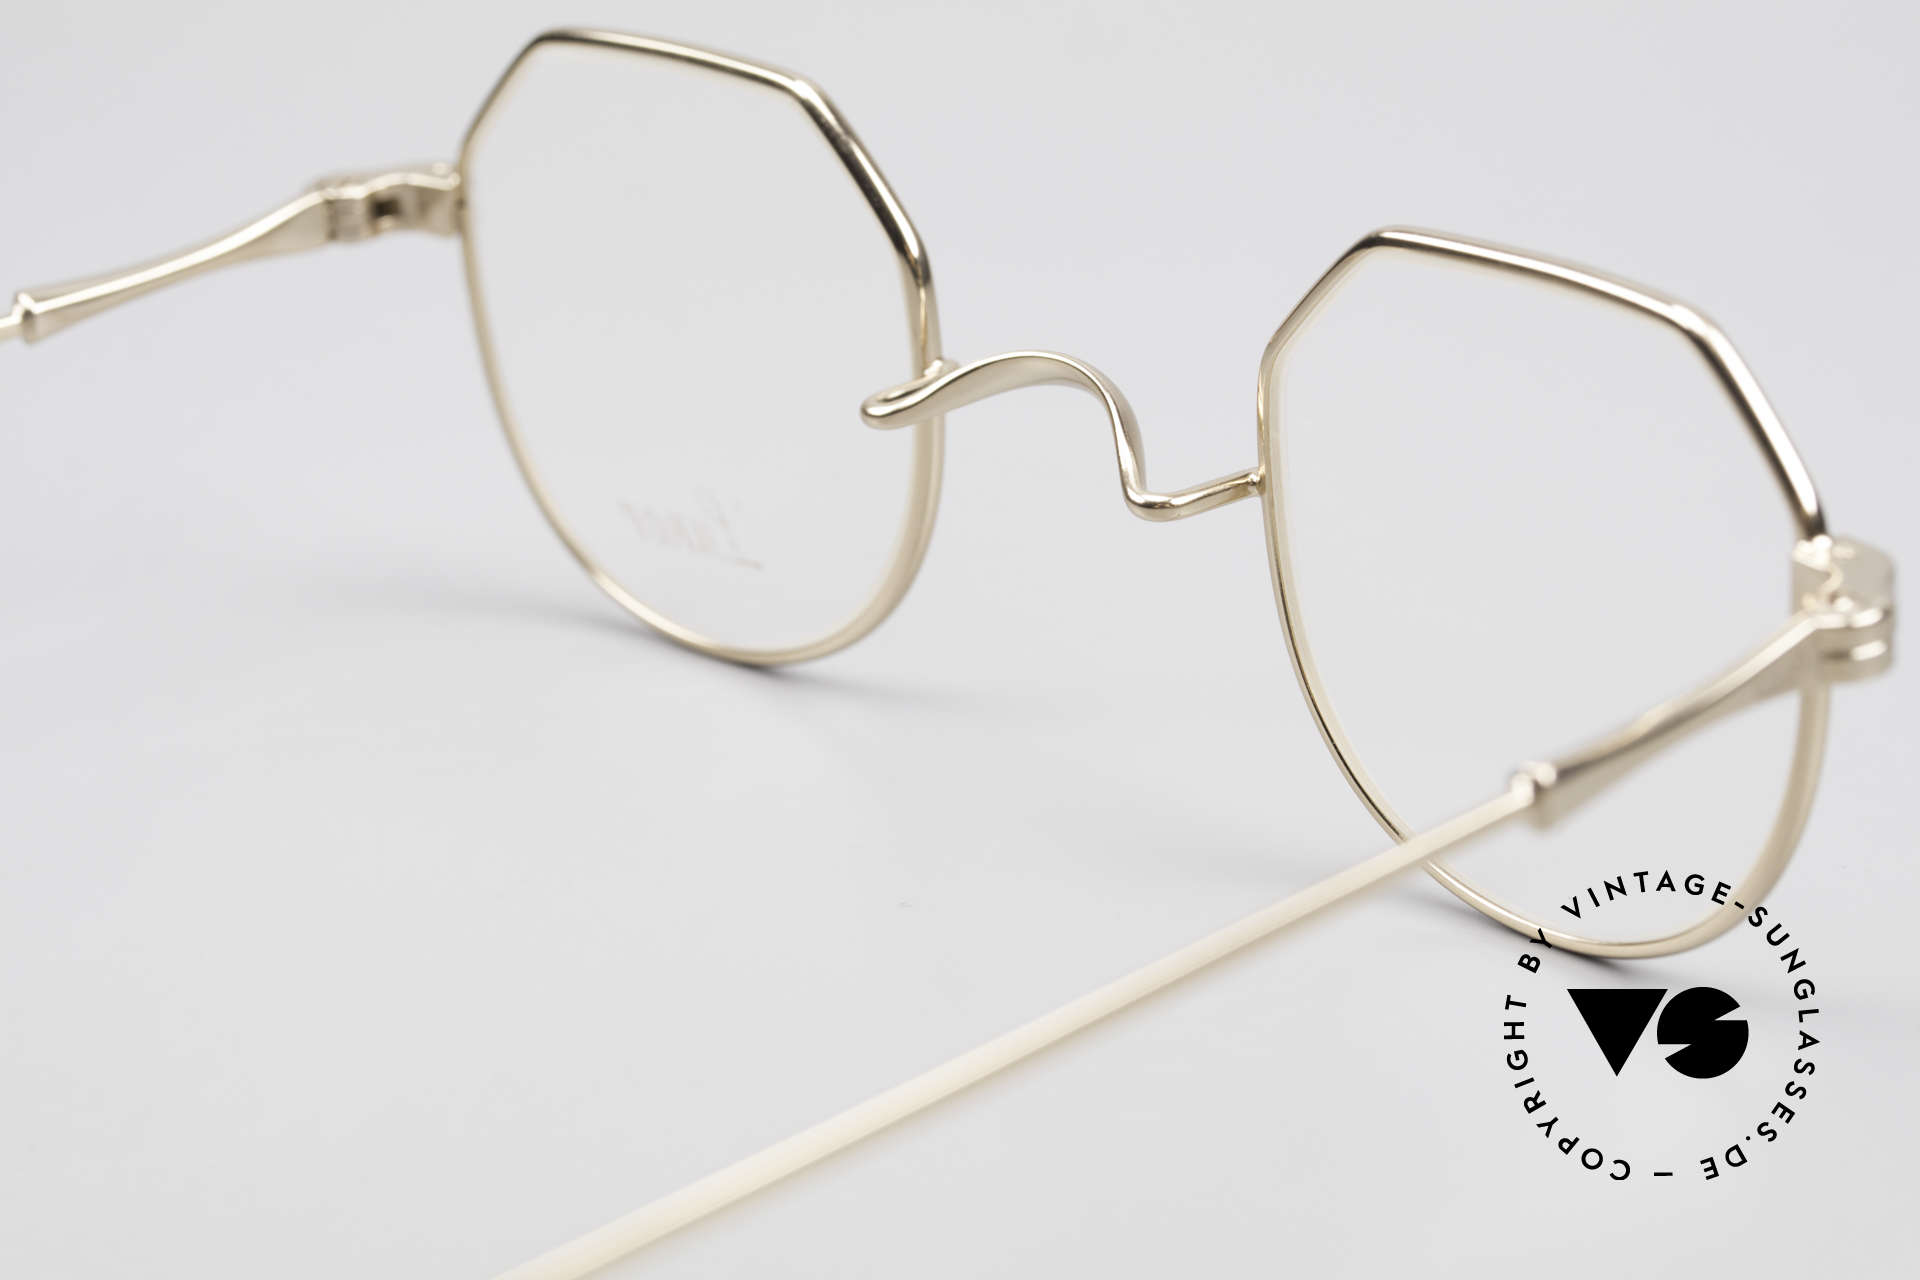 Lunor II 18 Hybrid Panto Frame Gold Plated, Hybrid: square and round shape together, GOLD-PLATED, Made for Men and Women